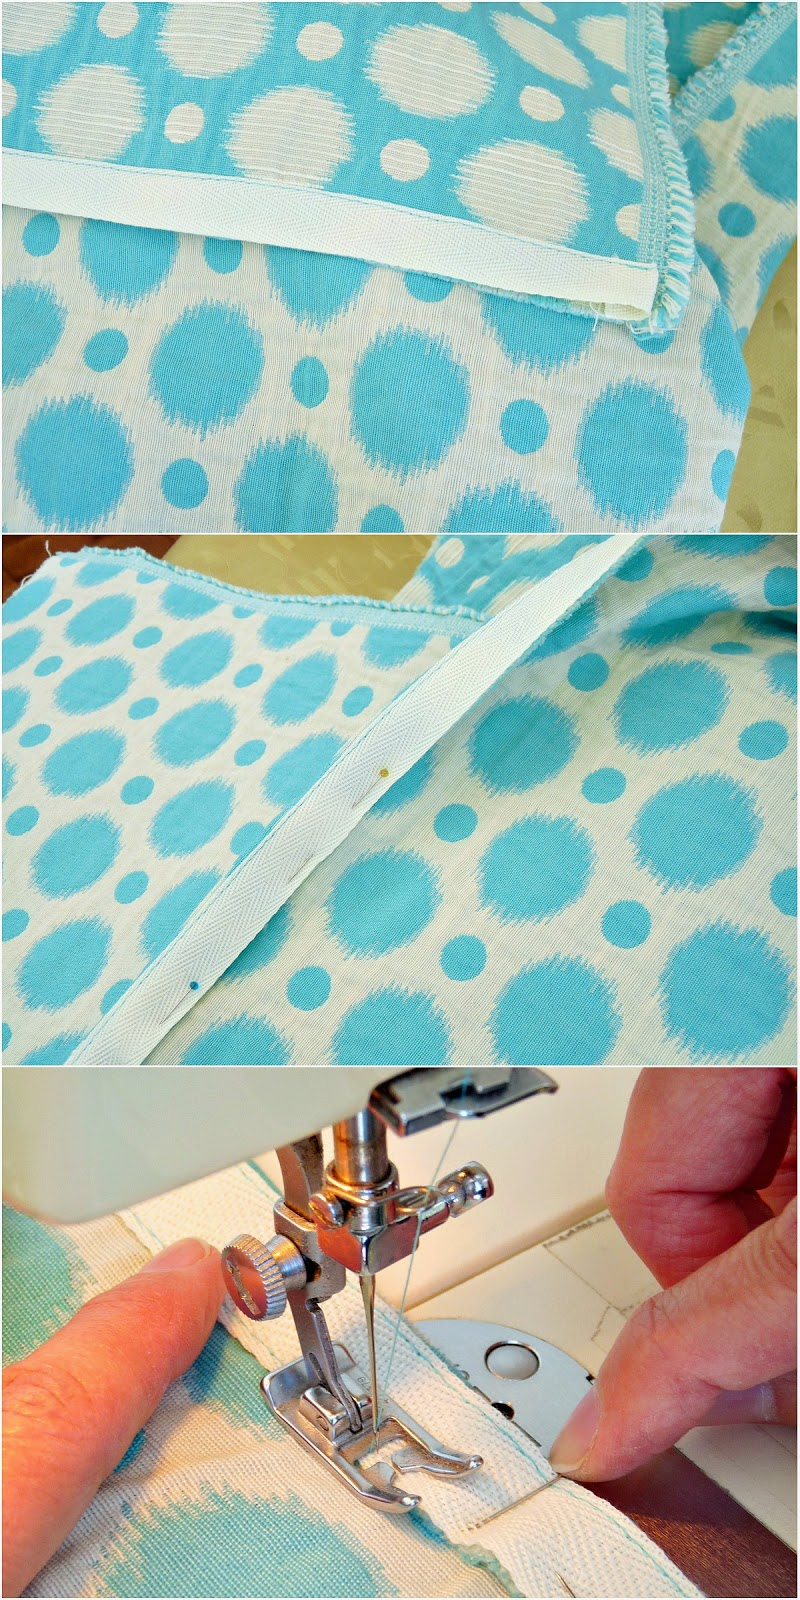 How to sew a hem with twill tape